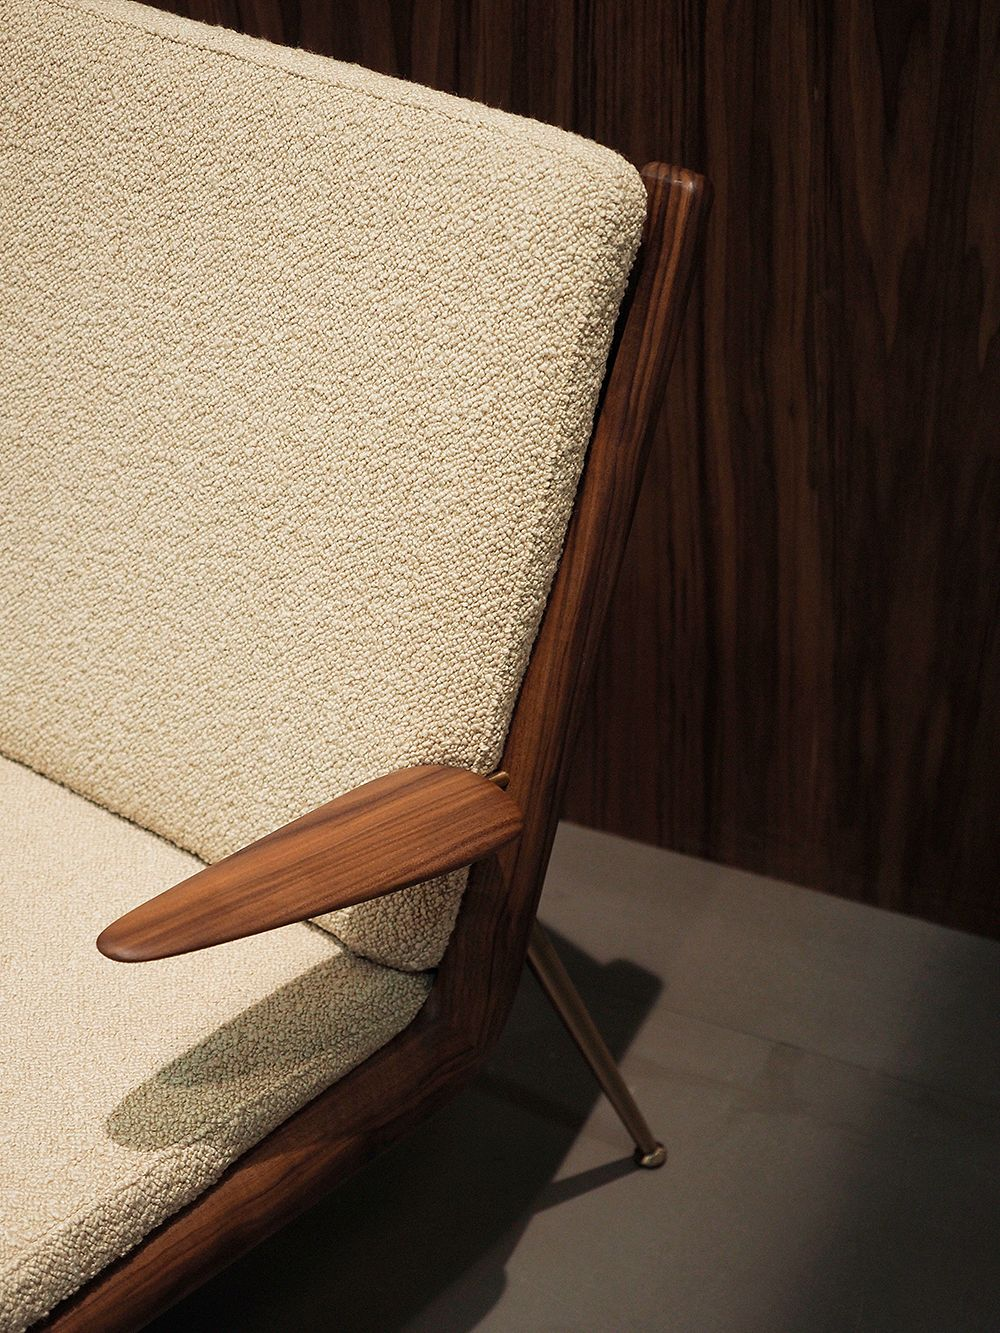 &Tradition Boomerang chair